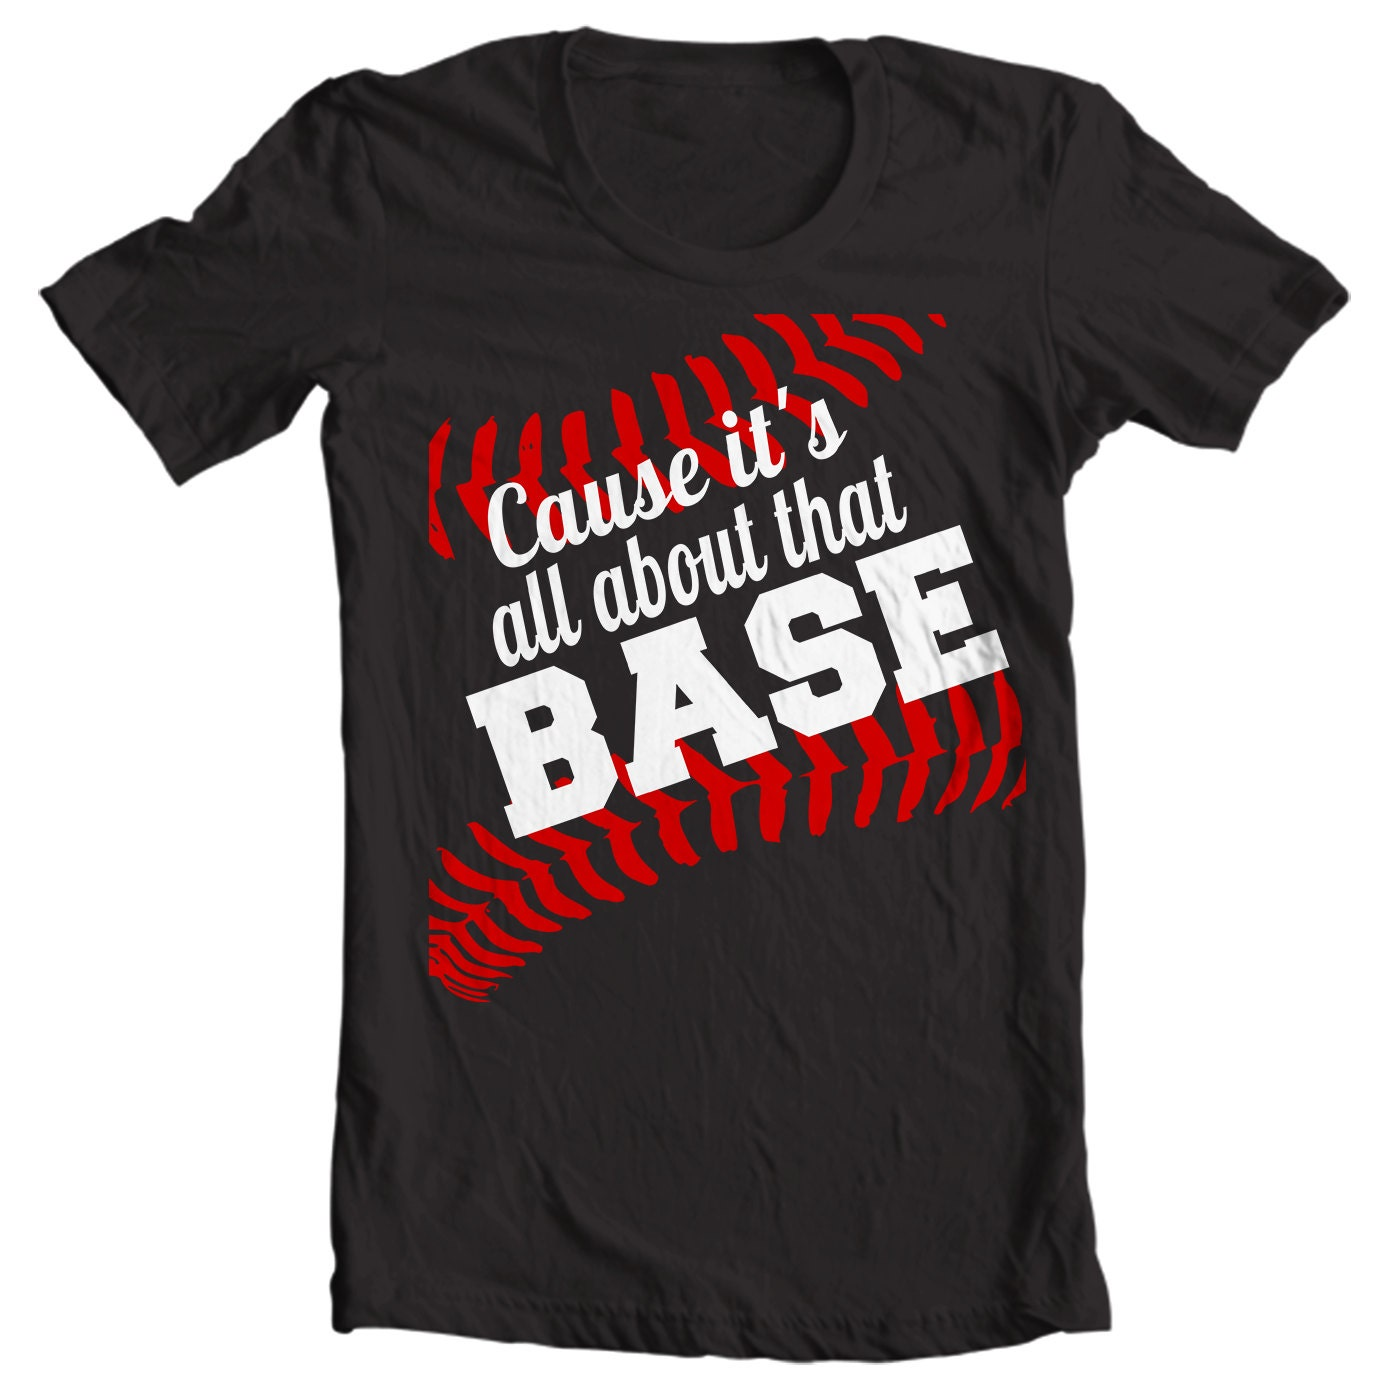 Cause It's All About That Base Baseball T-shirt